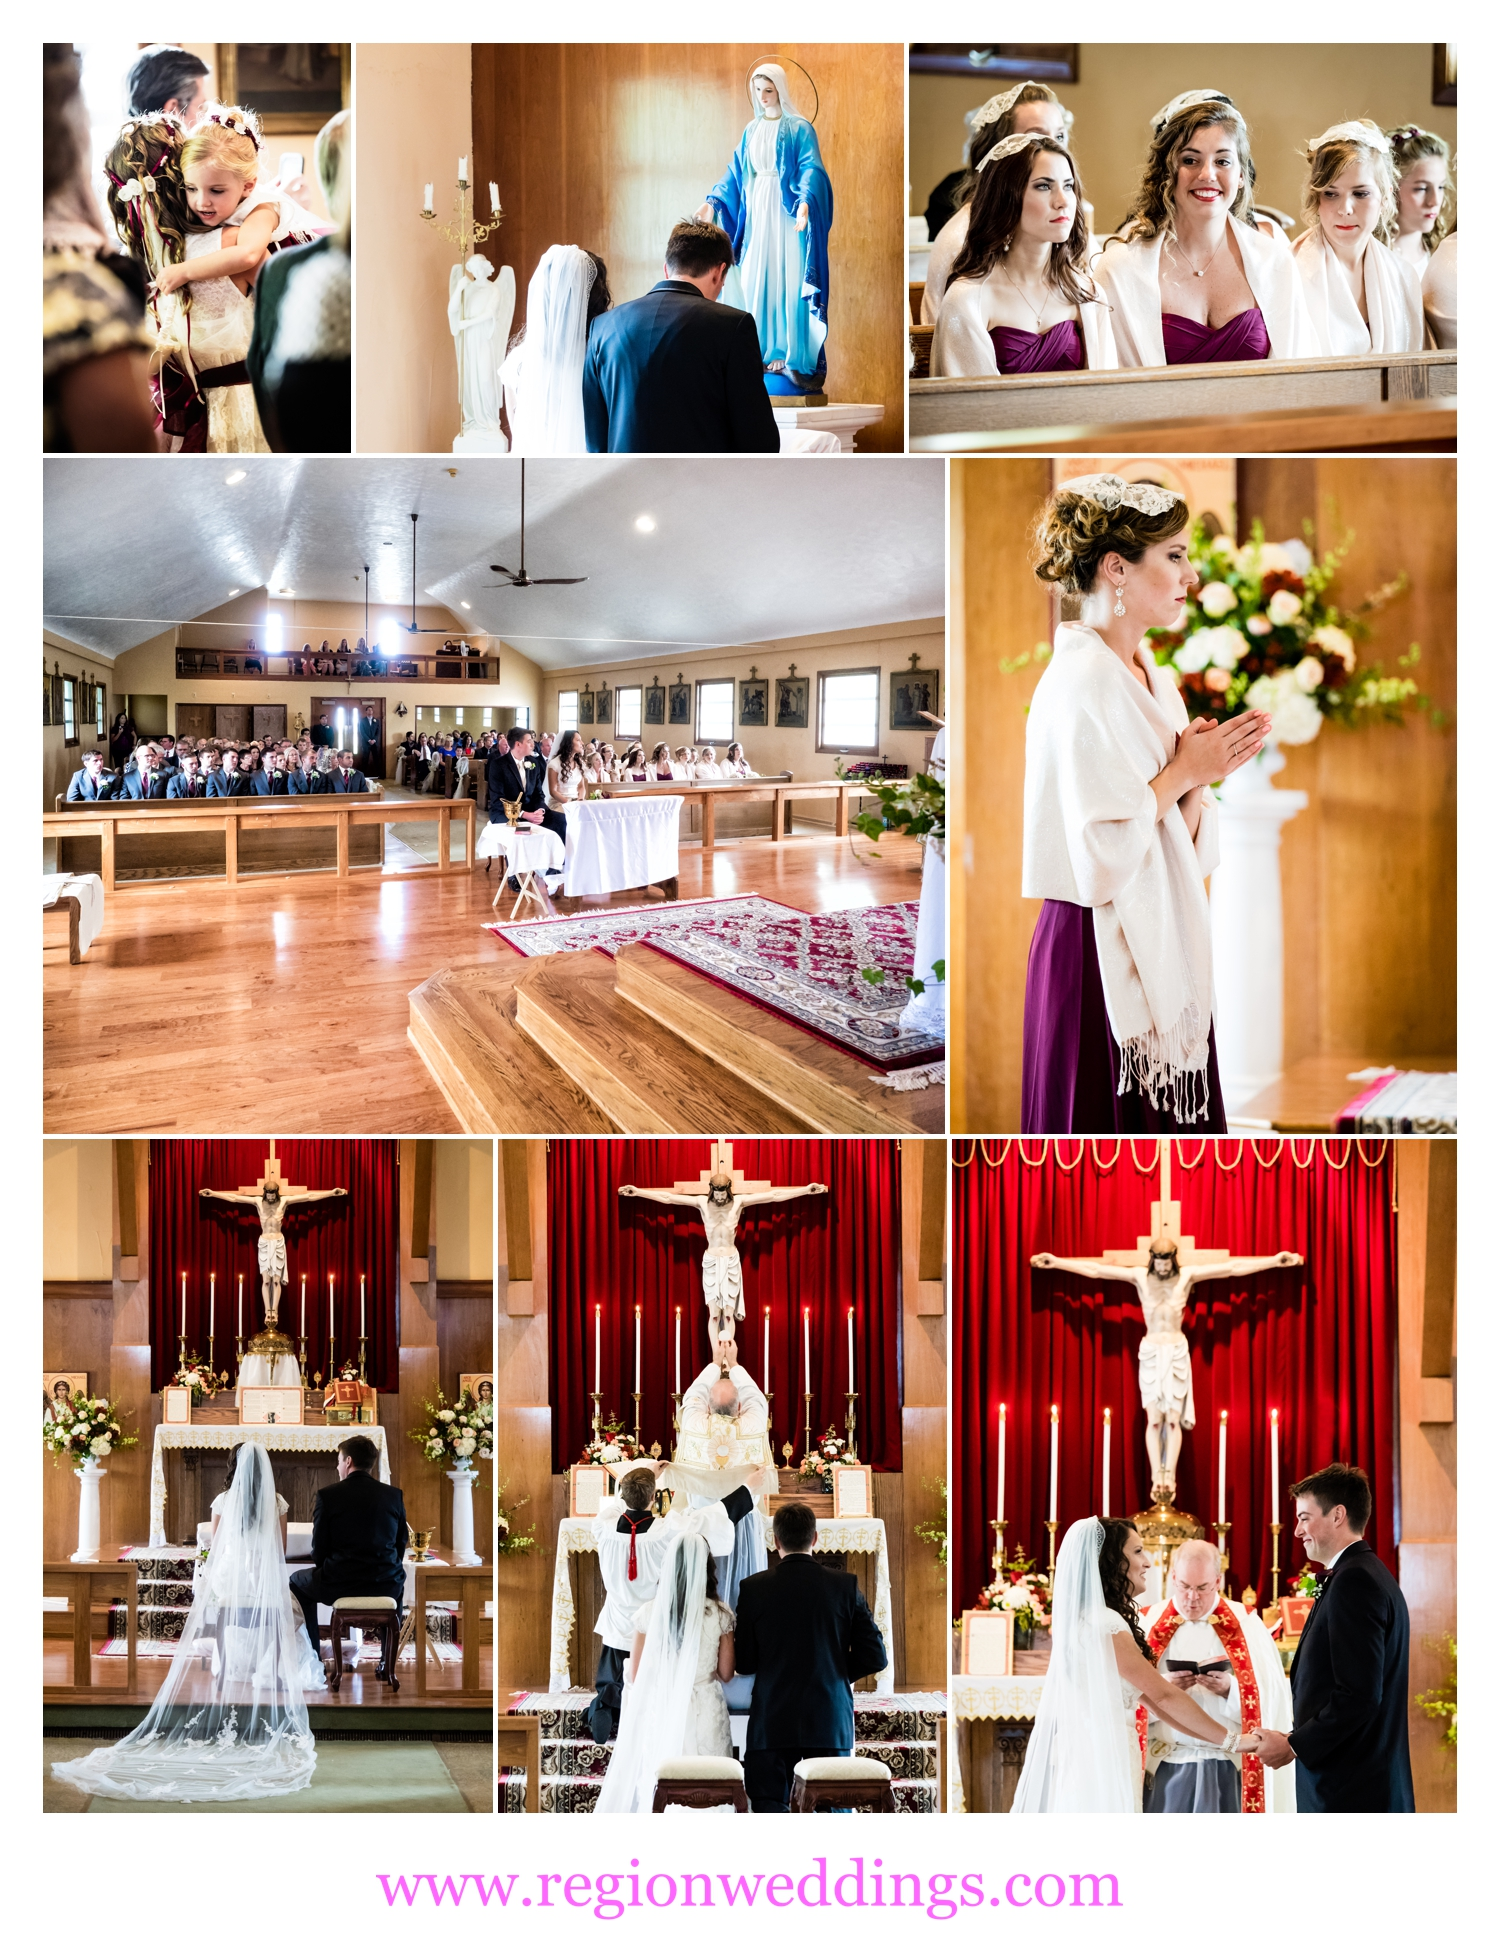 Catholic wedding ceremony in Kingsford Heights, Indiana.